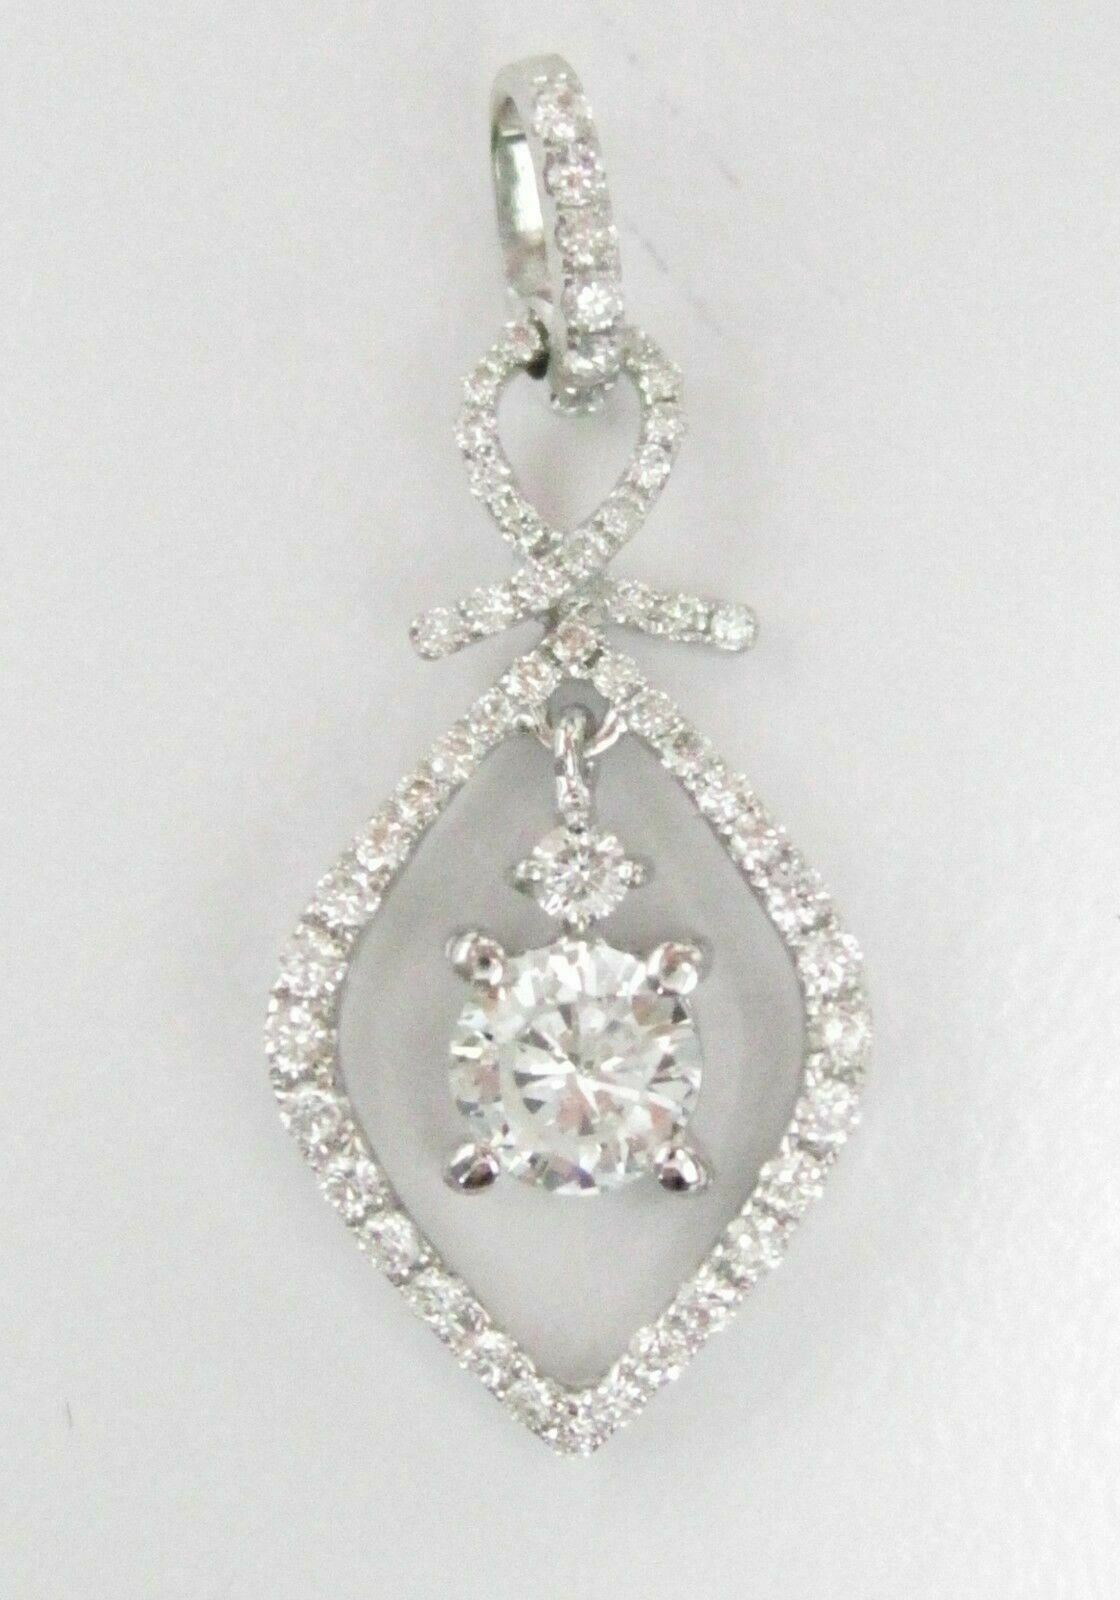 .93 TCW Single Round Brilliant Diamond Pendant G SI-1-1 18k White Gold